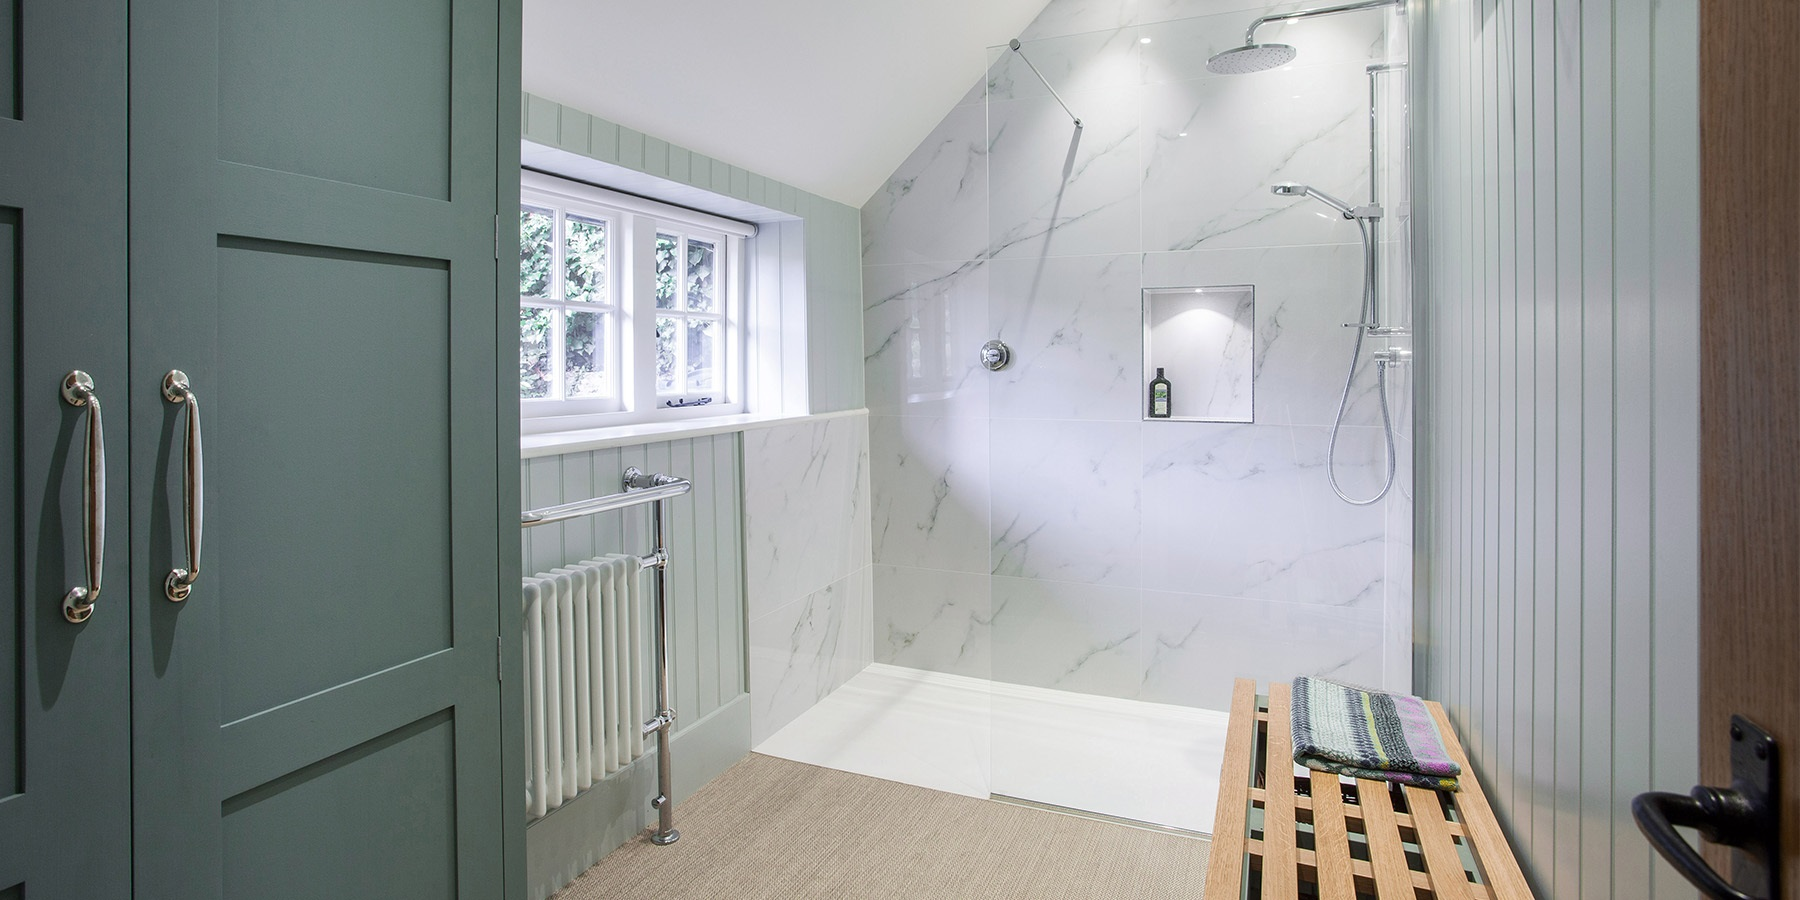 Bespoke Luxury Shower Room - Burlanes handmade bathroom furniture with walk-in shower area and marble tiles.